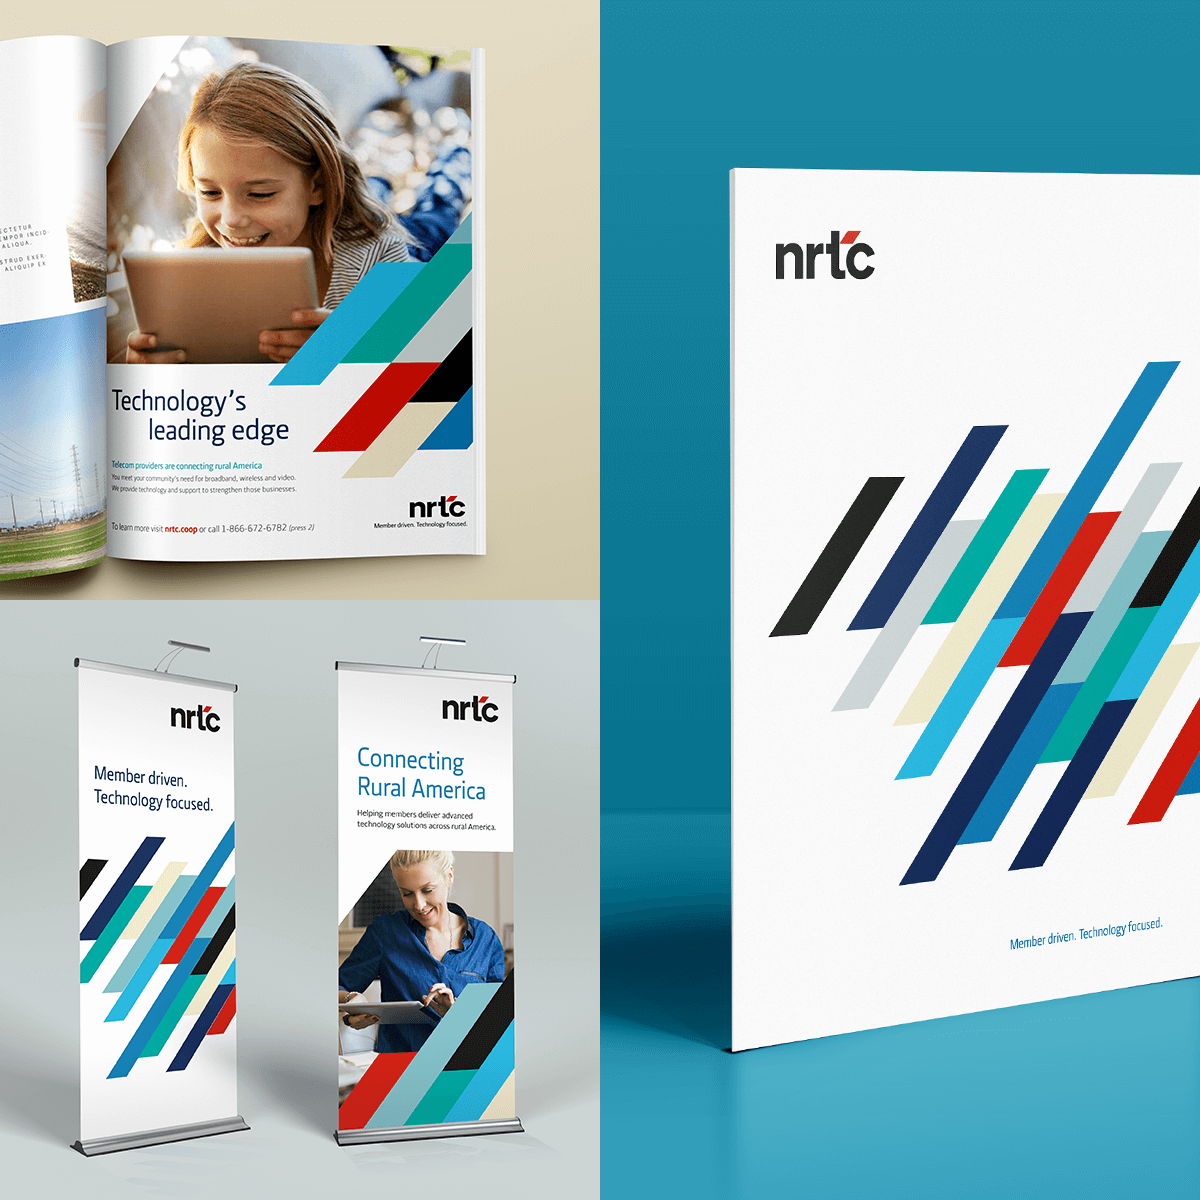 NRTC brand collateral materials including magazine, brochure and tradeshow booth banners.